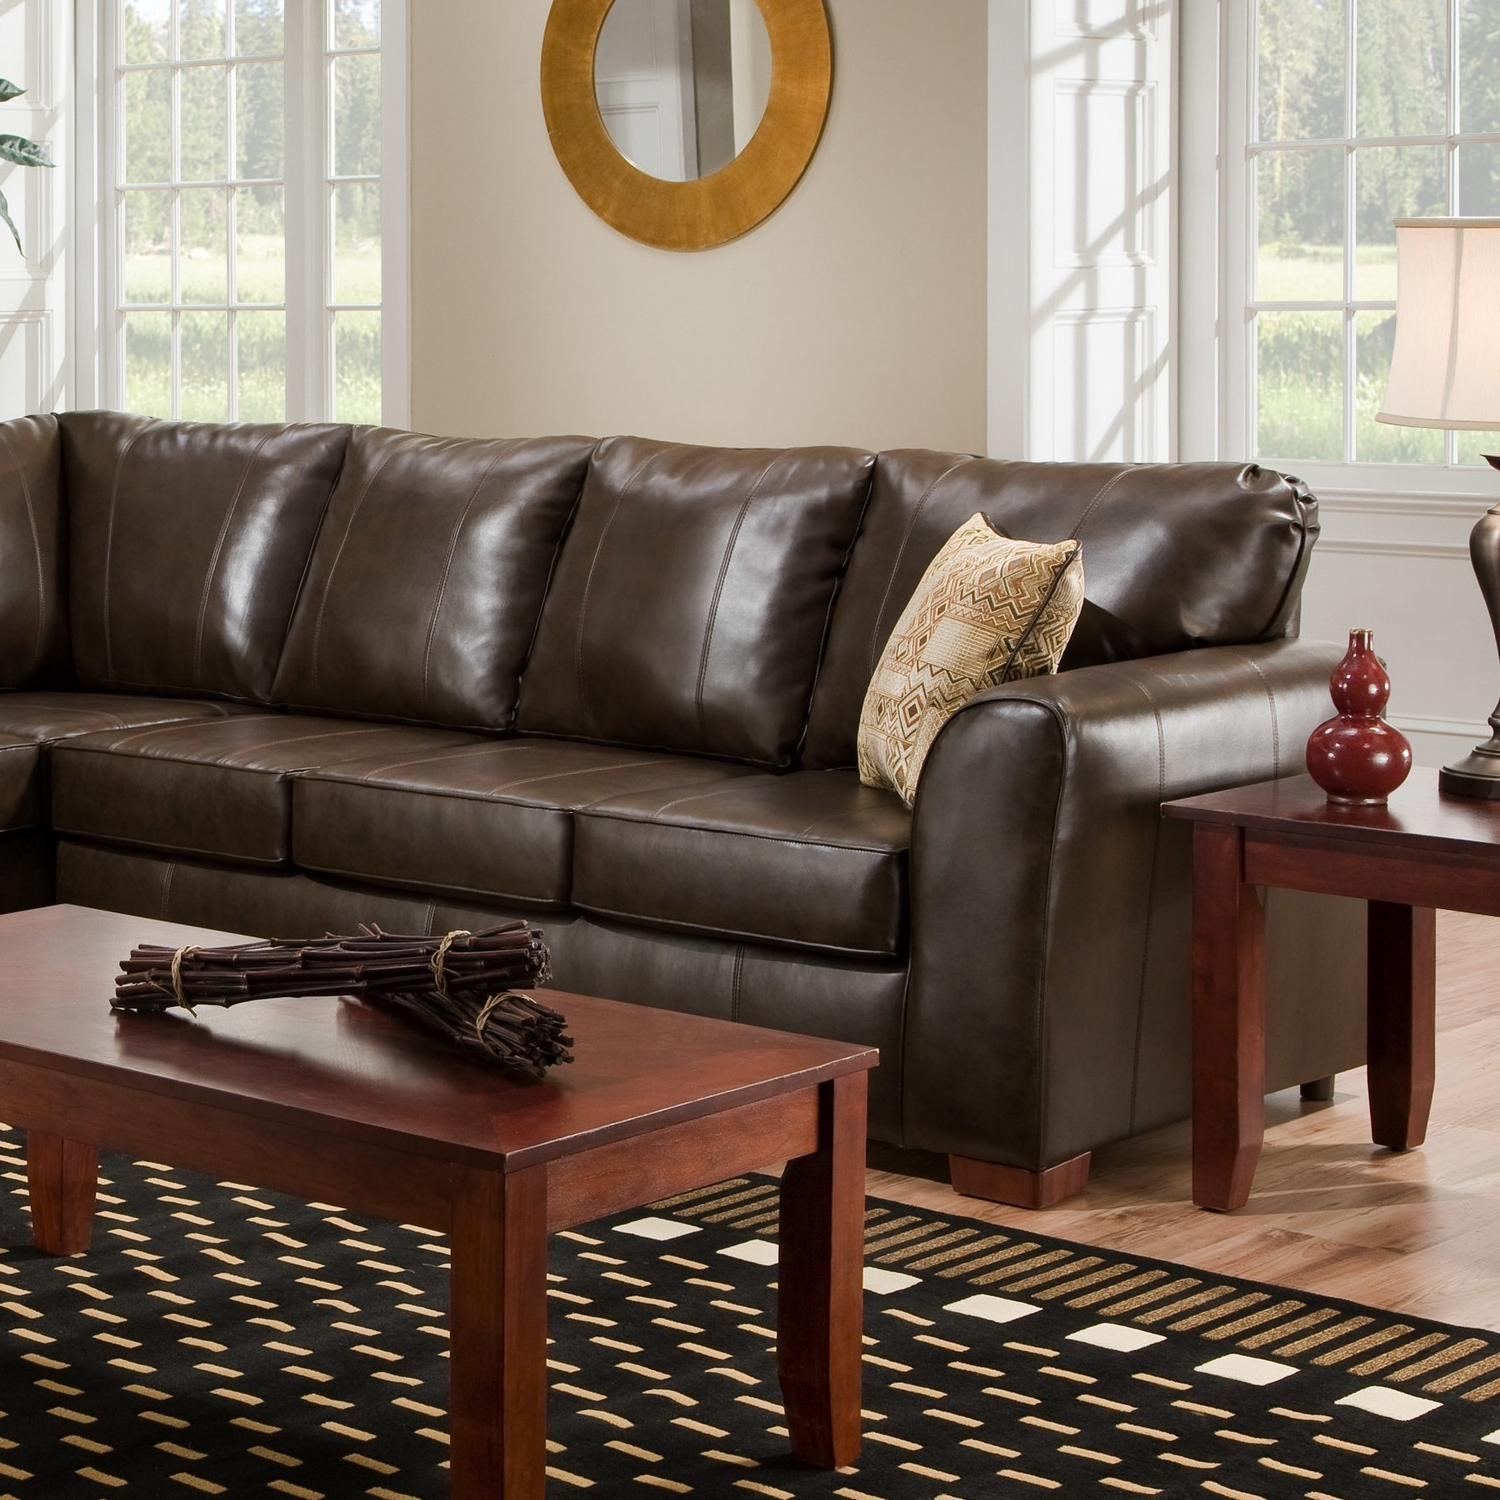 Most Popular Houzz Sectional Sofas Regarding Bedroom: Houzz Living Rooms With Cheap Sectional Couches (View 4 of 20)